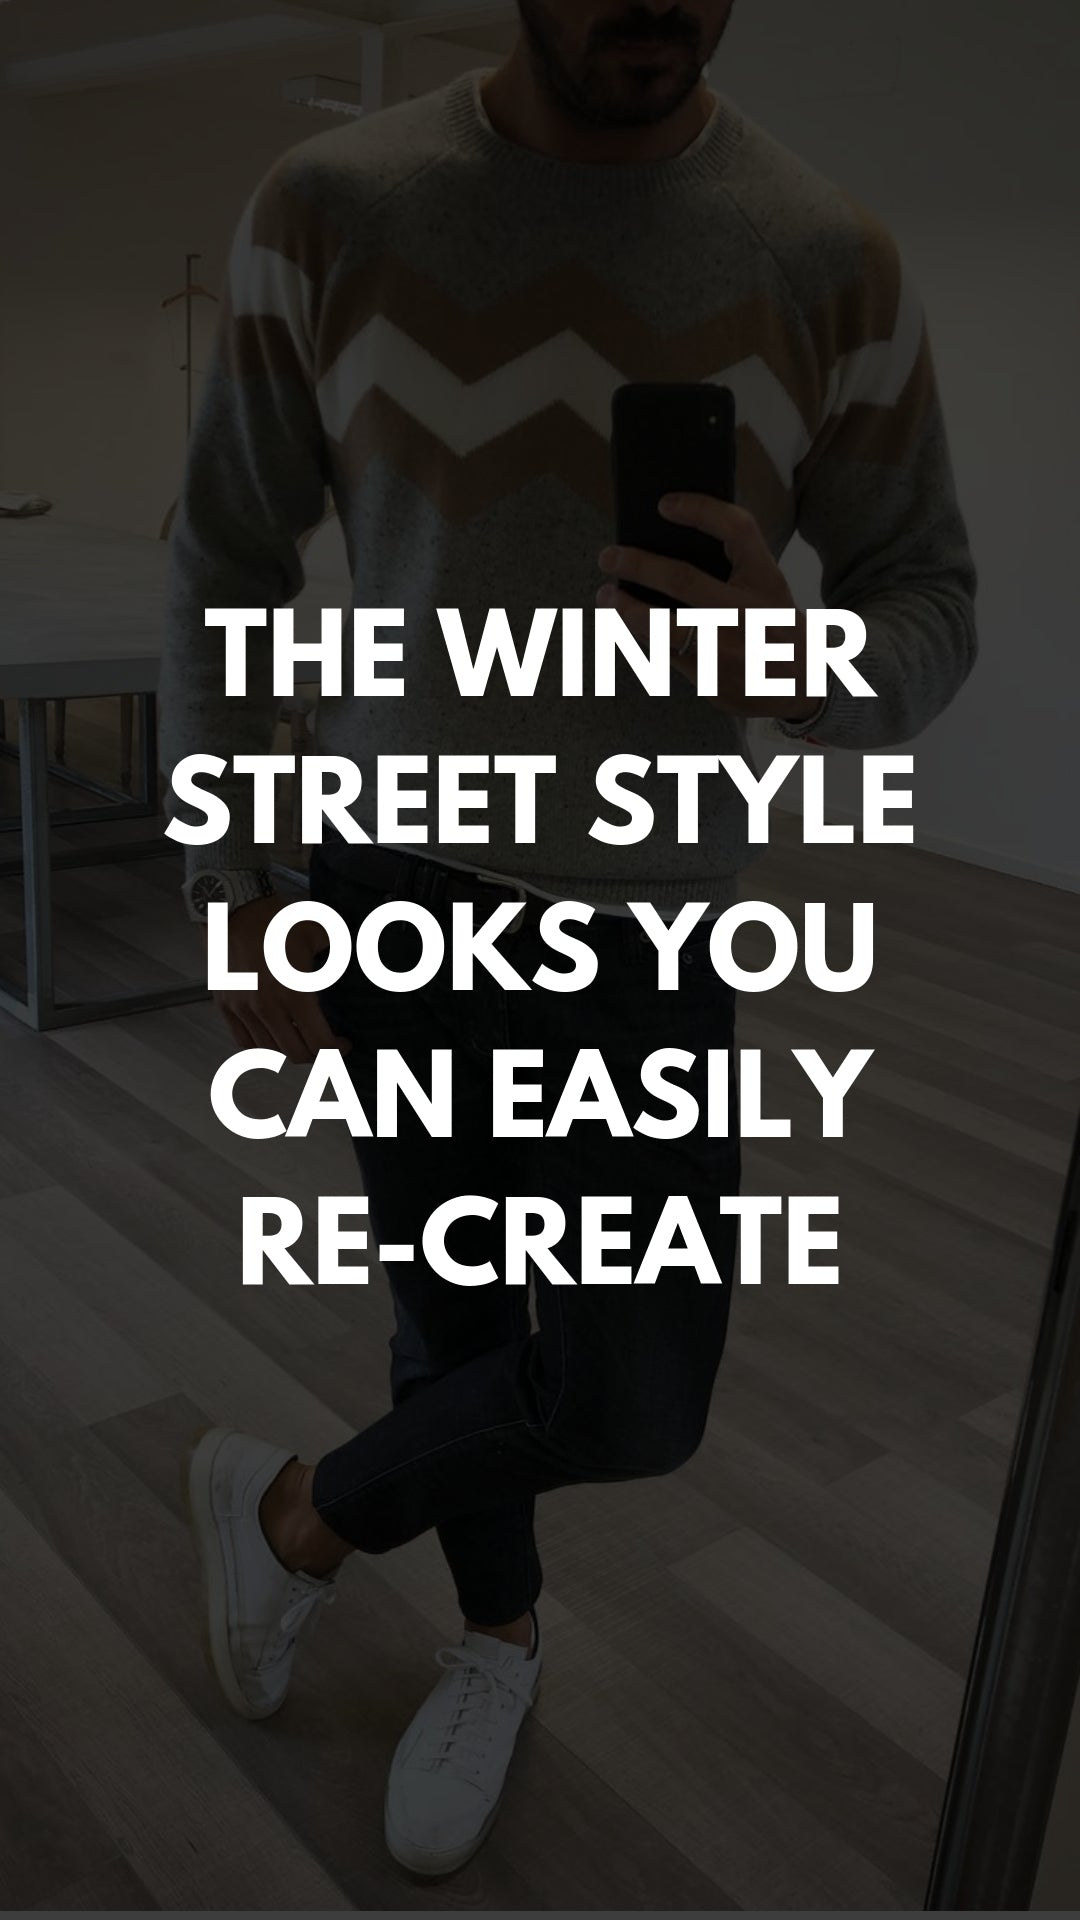 The Winter Street Style Looks You Can Easily Re-Create #winterstyle #fallfashion #streetstyle